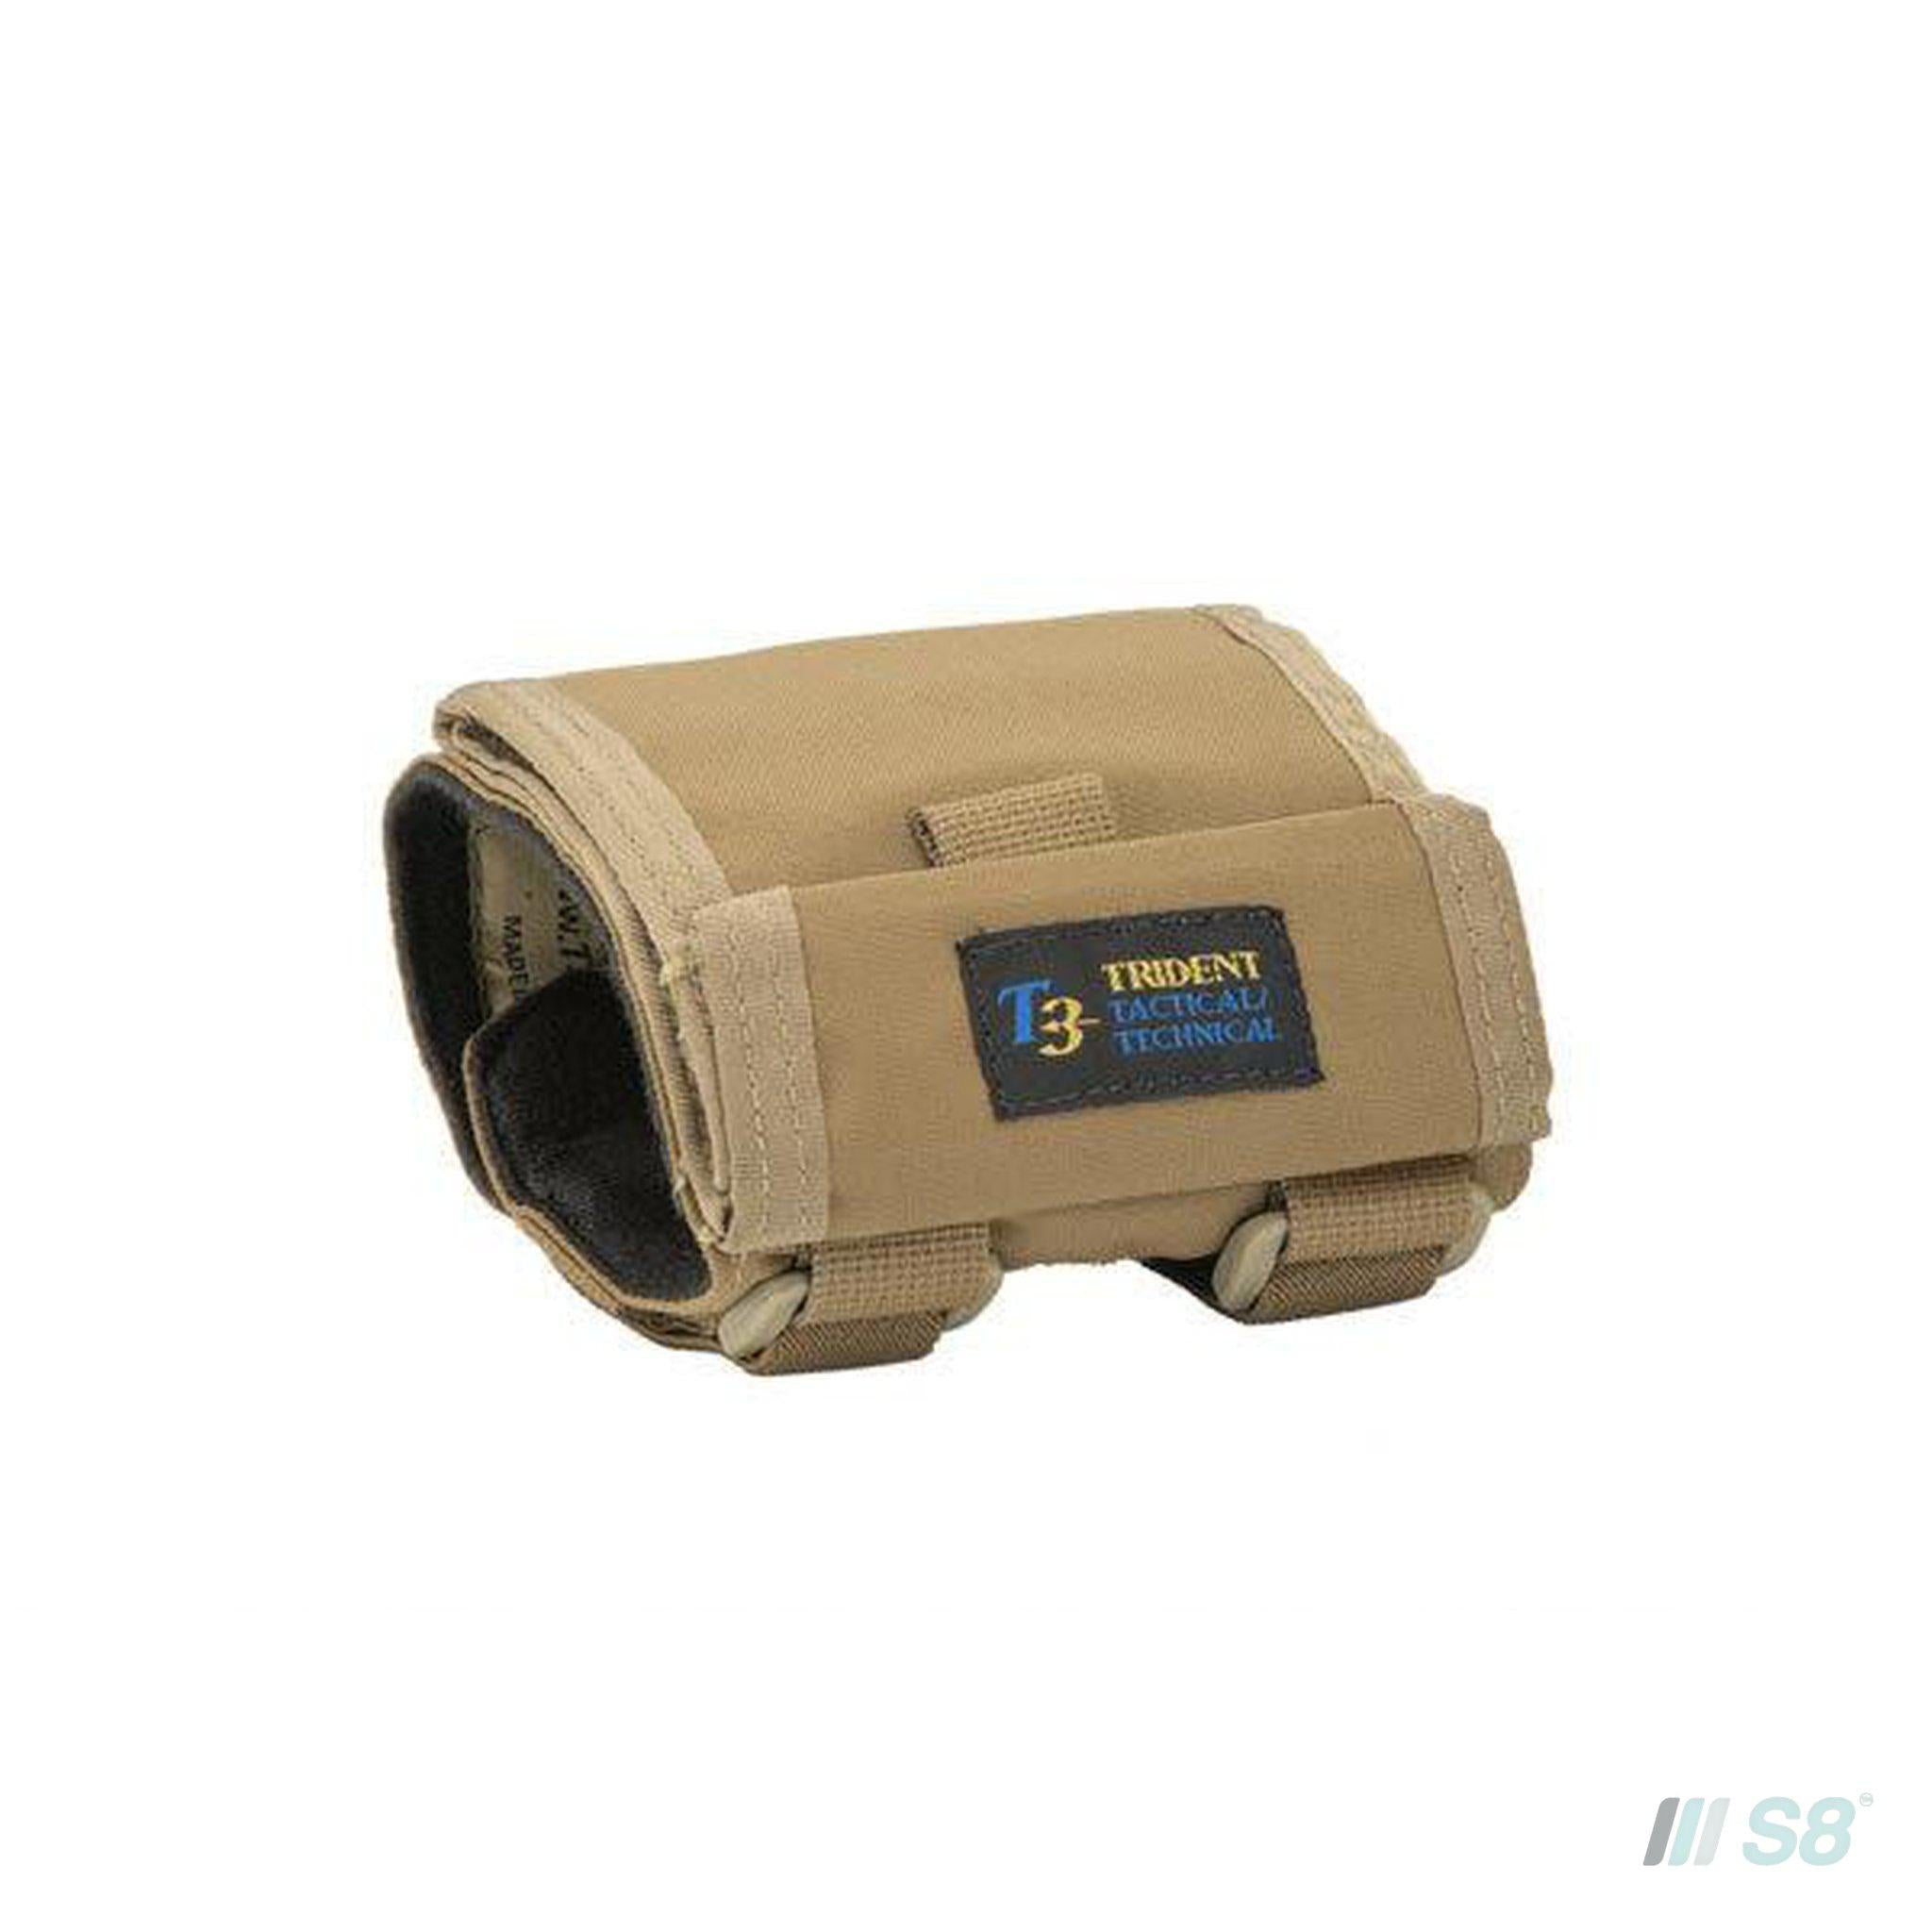 T3 Tactical Armband-T3-S8 Products Group